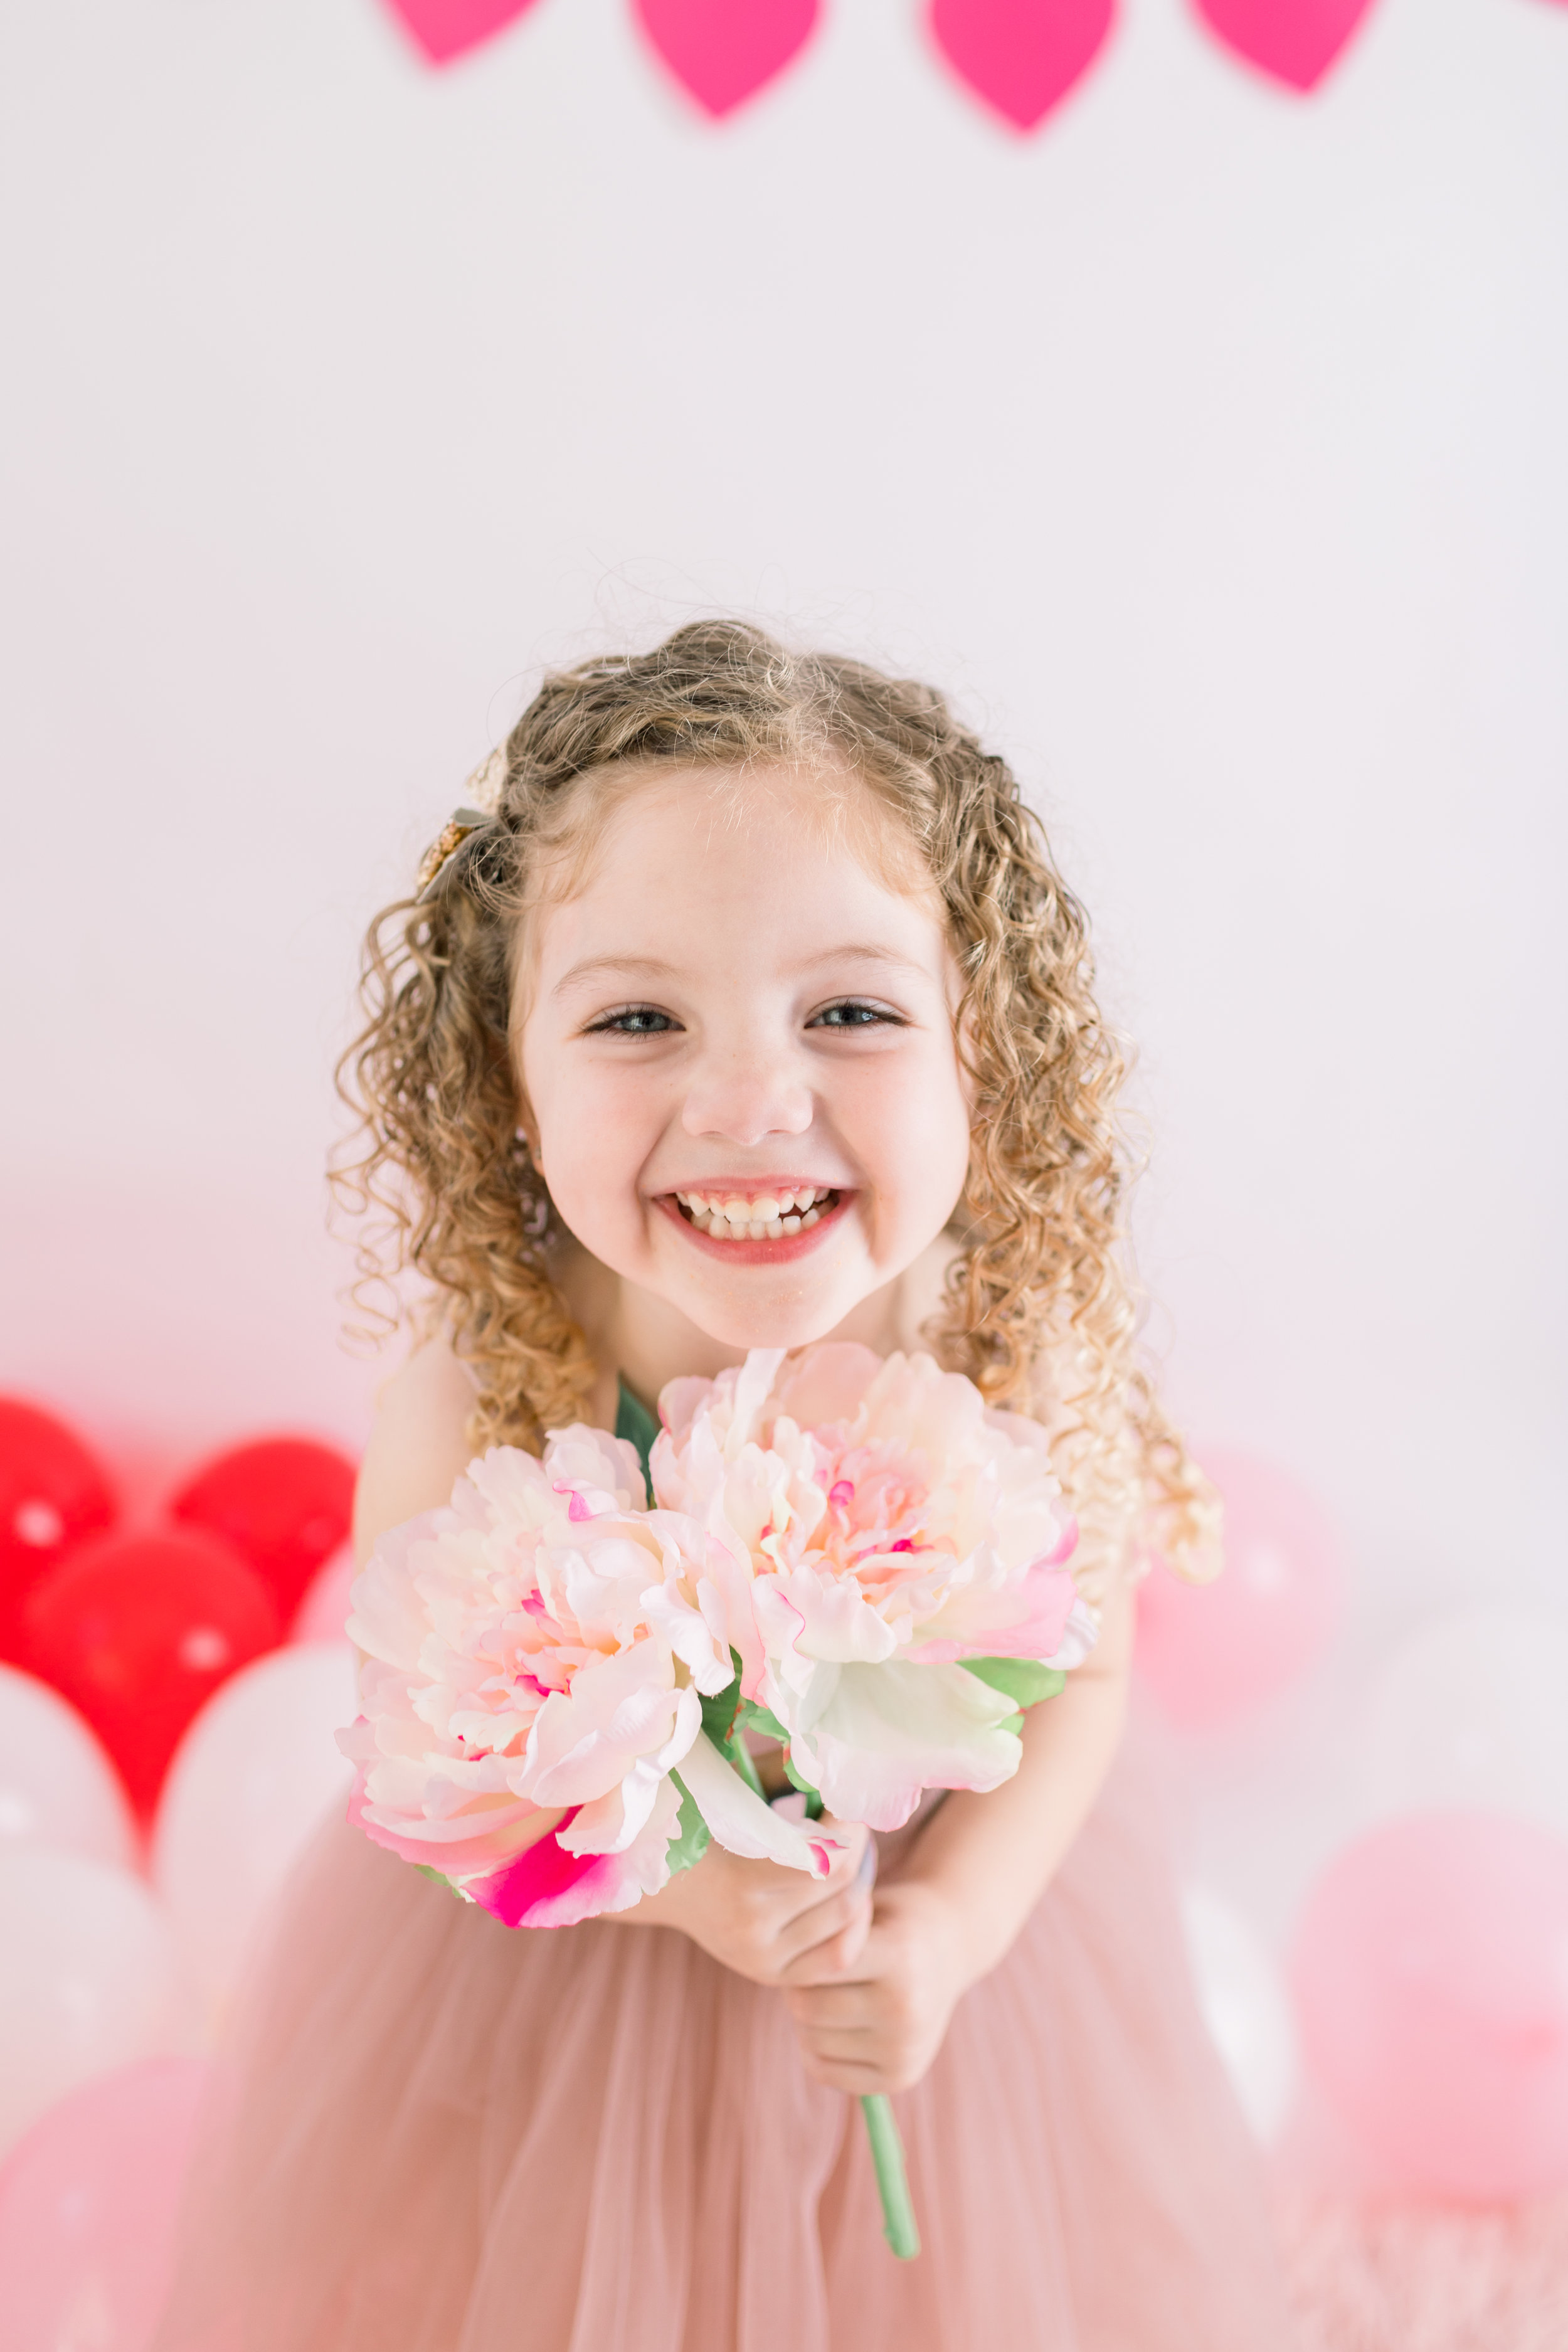 girl-holding-bunch-of-flowers-valentines-day-shoot